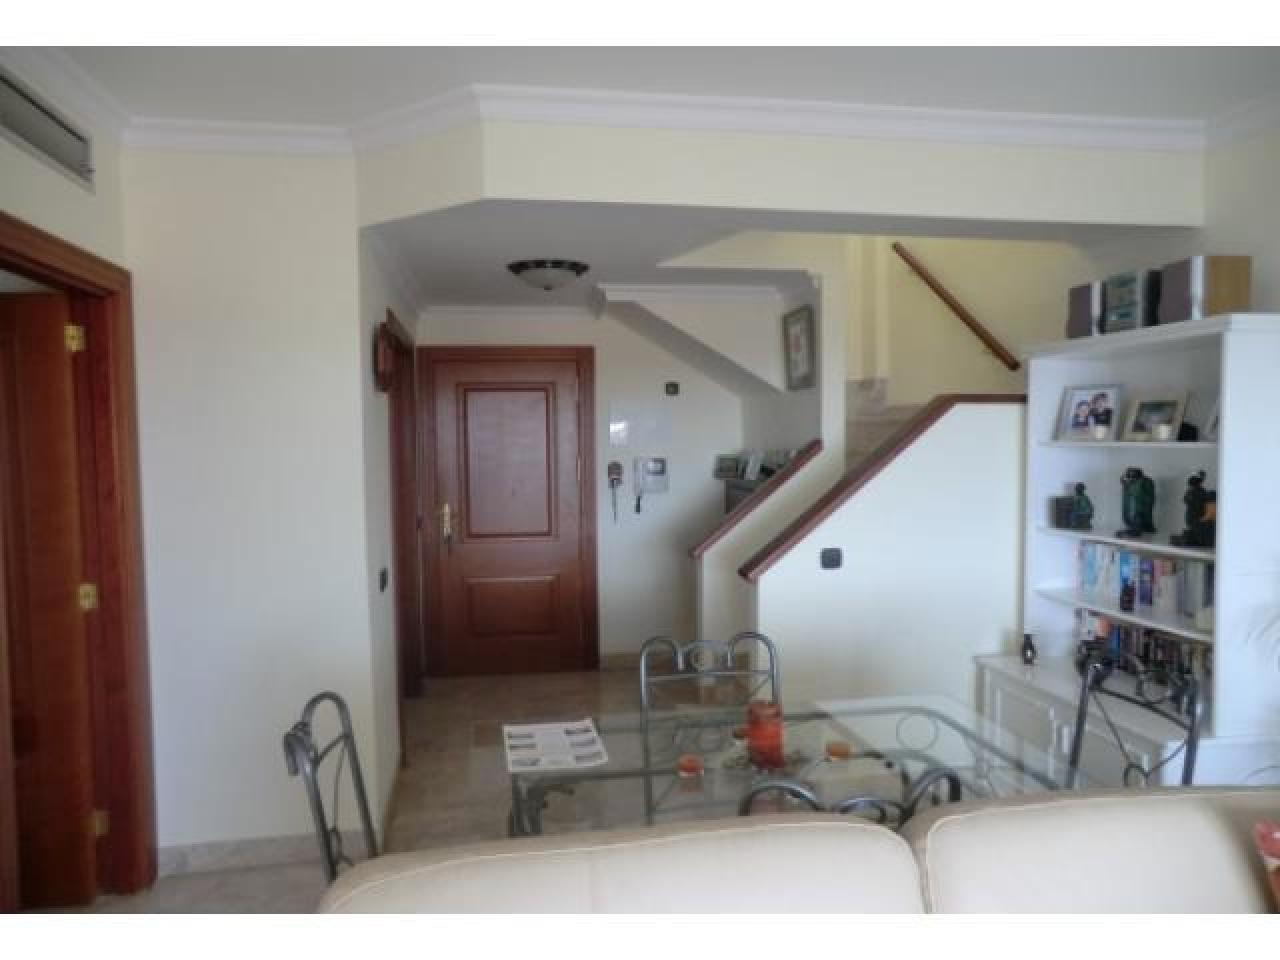 Real estate in Tenerife for sale » #250 - 1